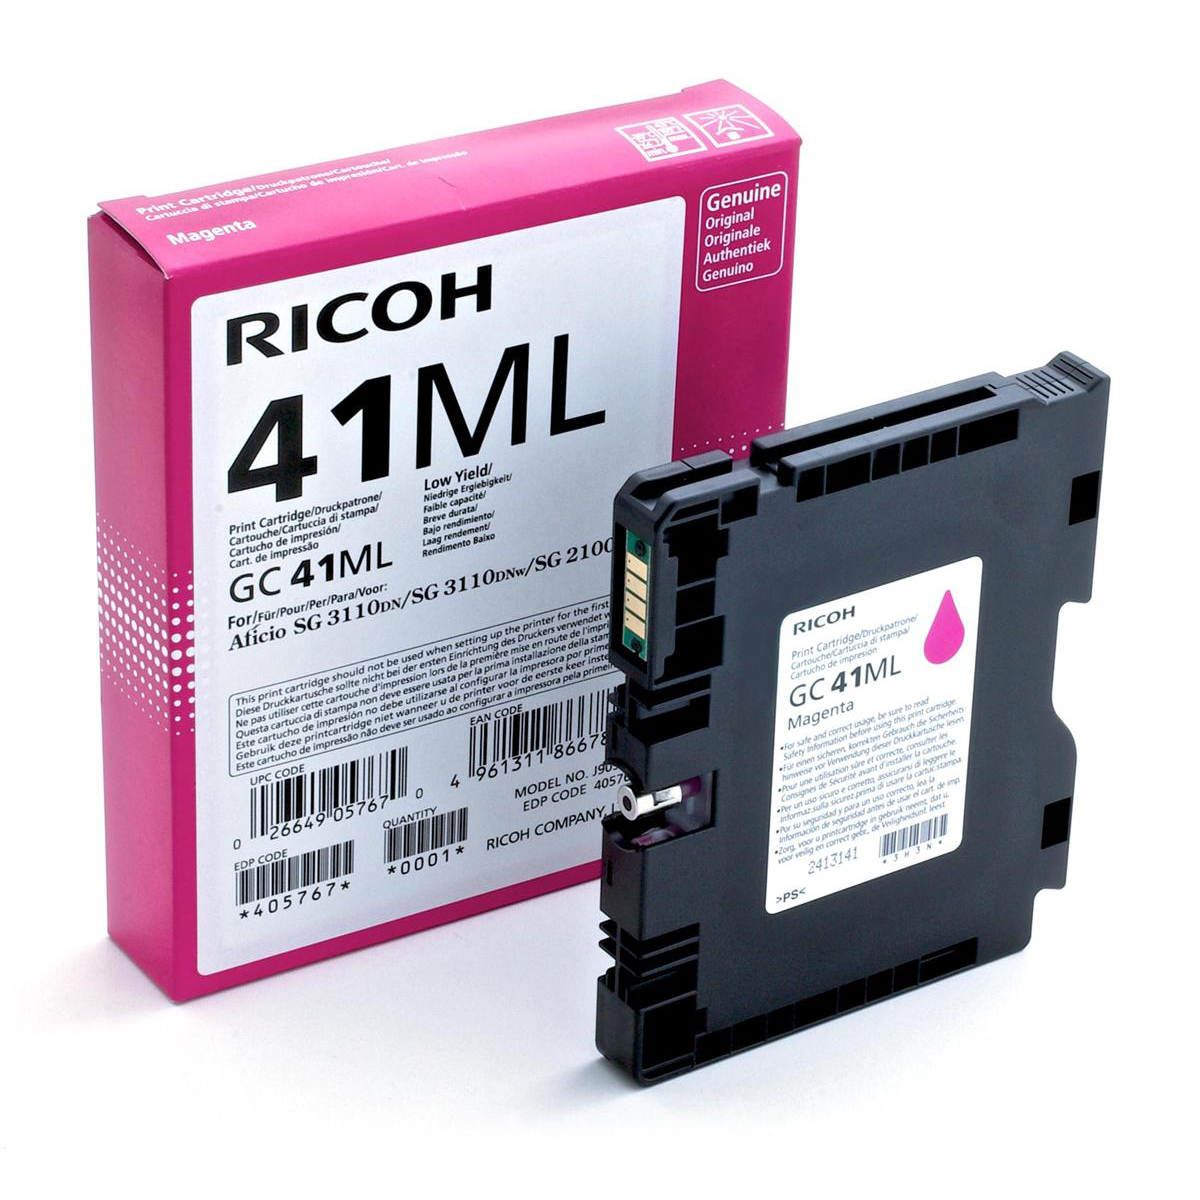 Ricoh Gel Inkjet Cartridge Page Life 600pp Magenta Ref GC-41ML 405767